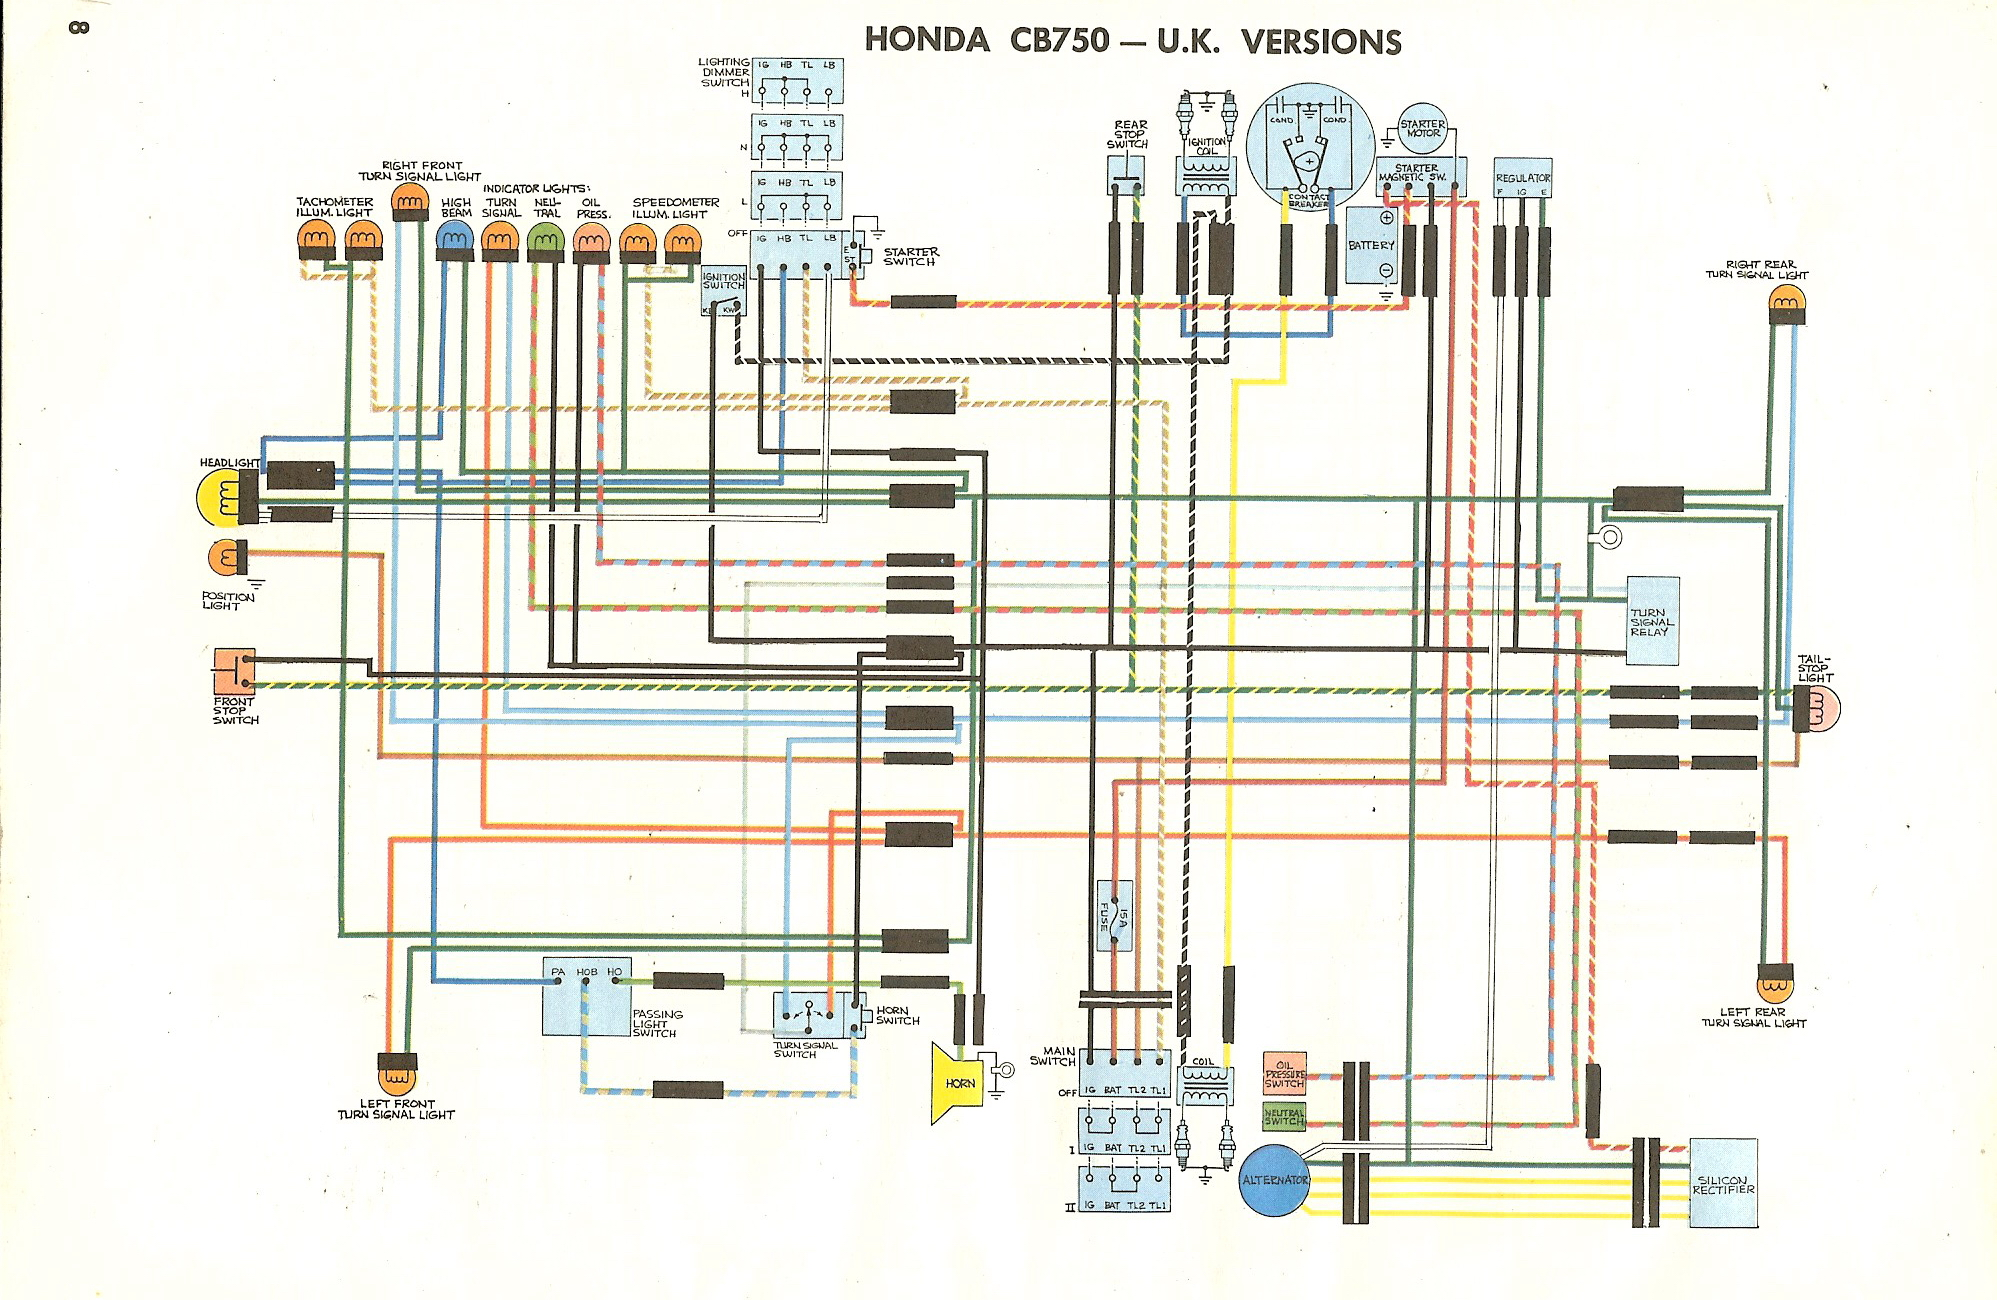 WD750UK cb750k honda cb550 wiring diagram at mifinder.co